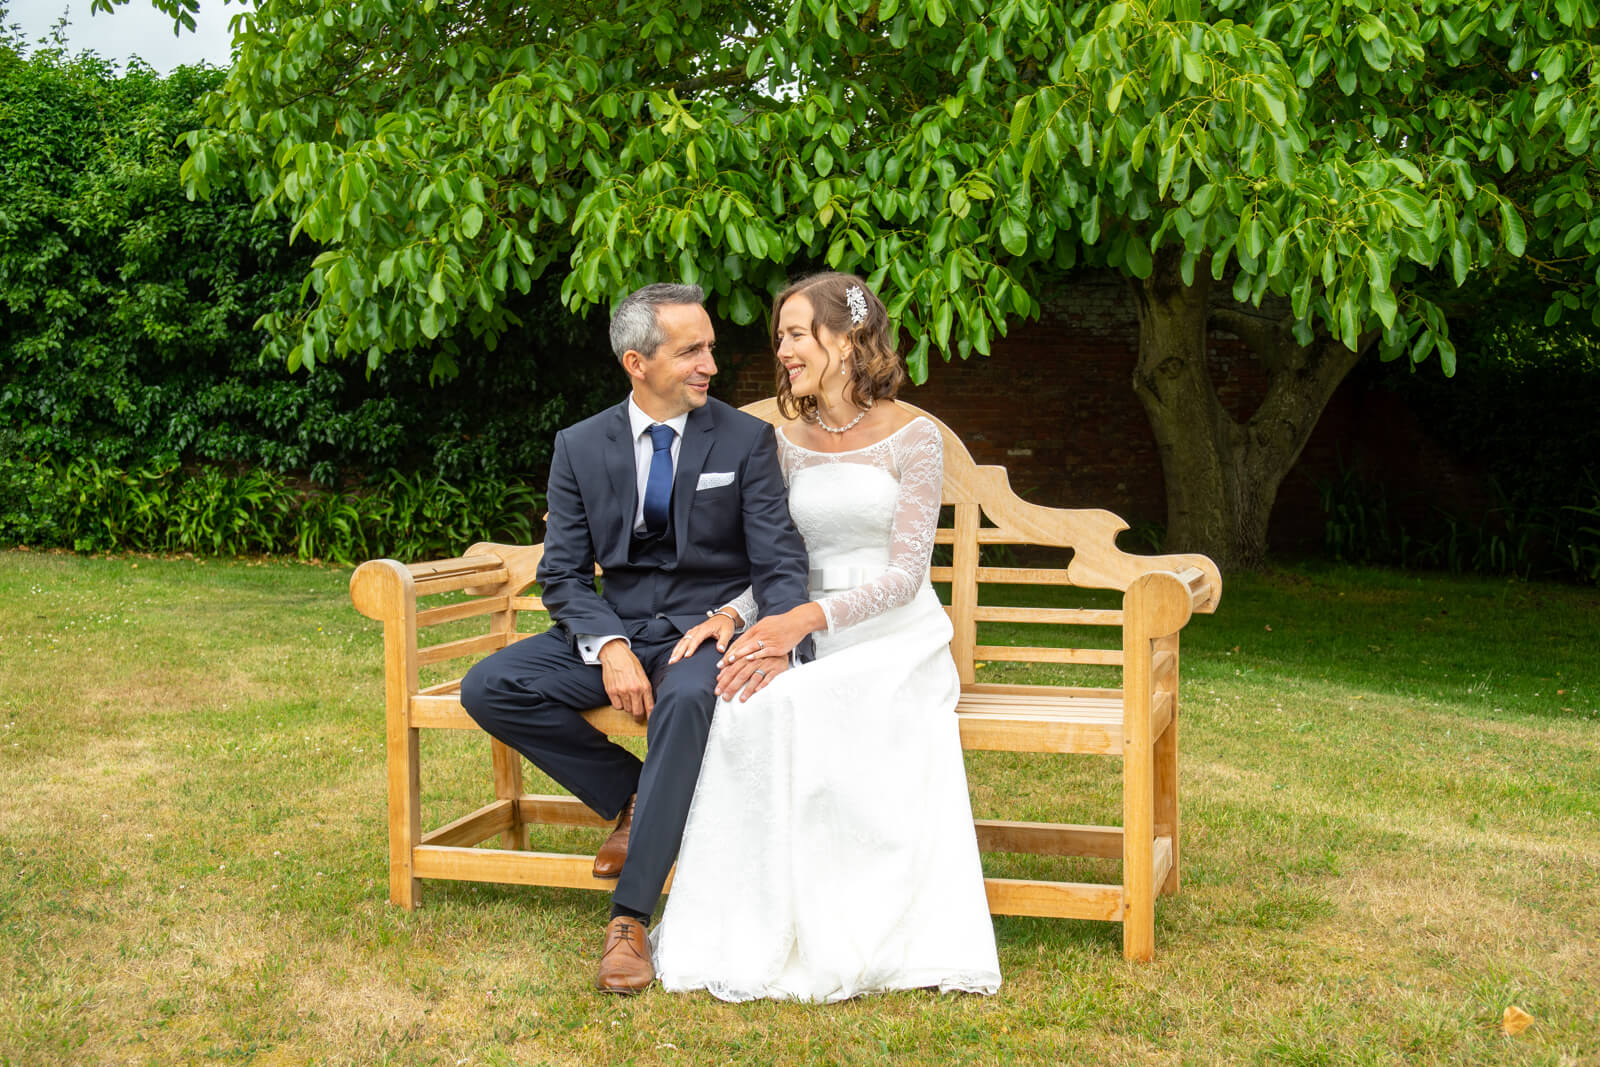 Bride and groom looking at each other and holding hands sat on a bench by a tree